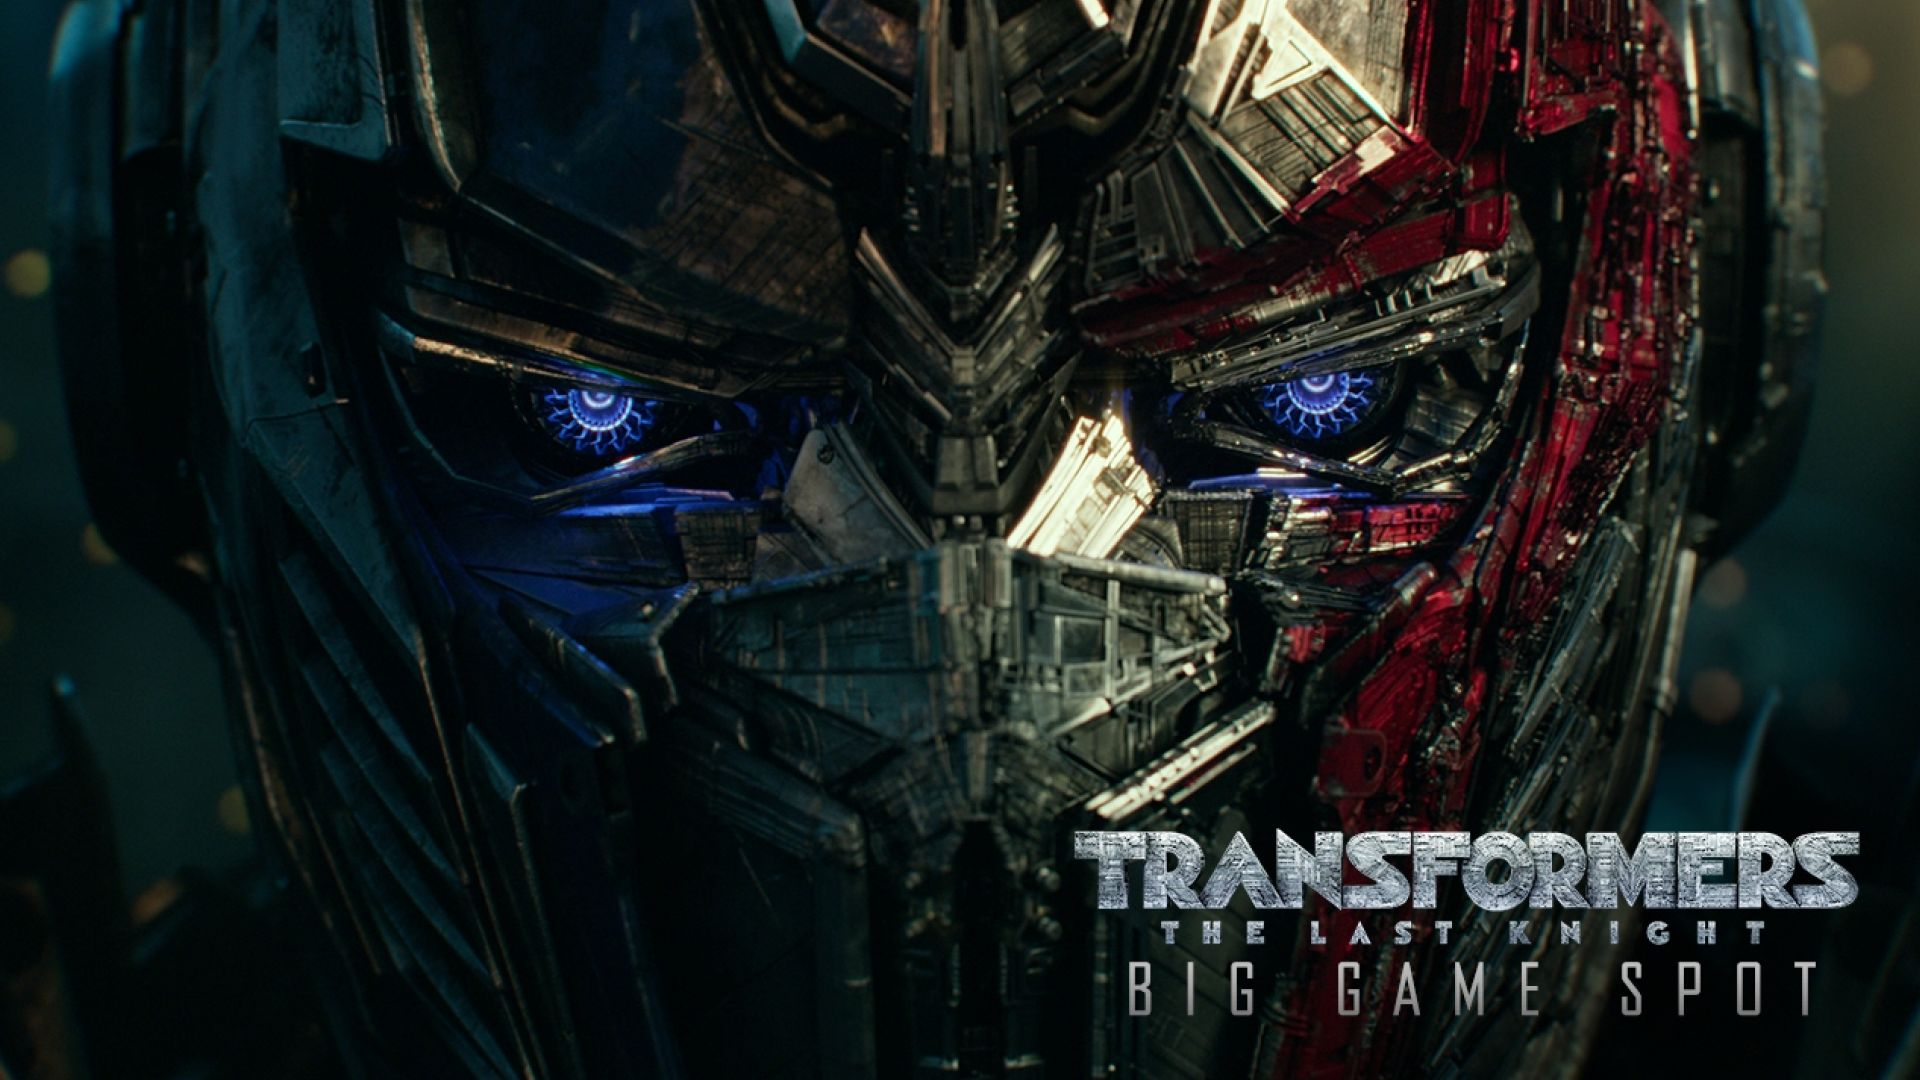 A Superbowl Spot for 'Transformers: The Last Knight' offers